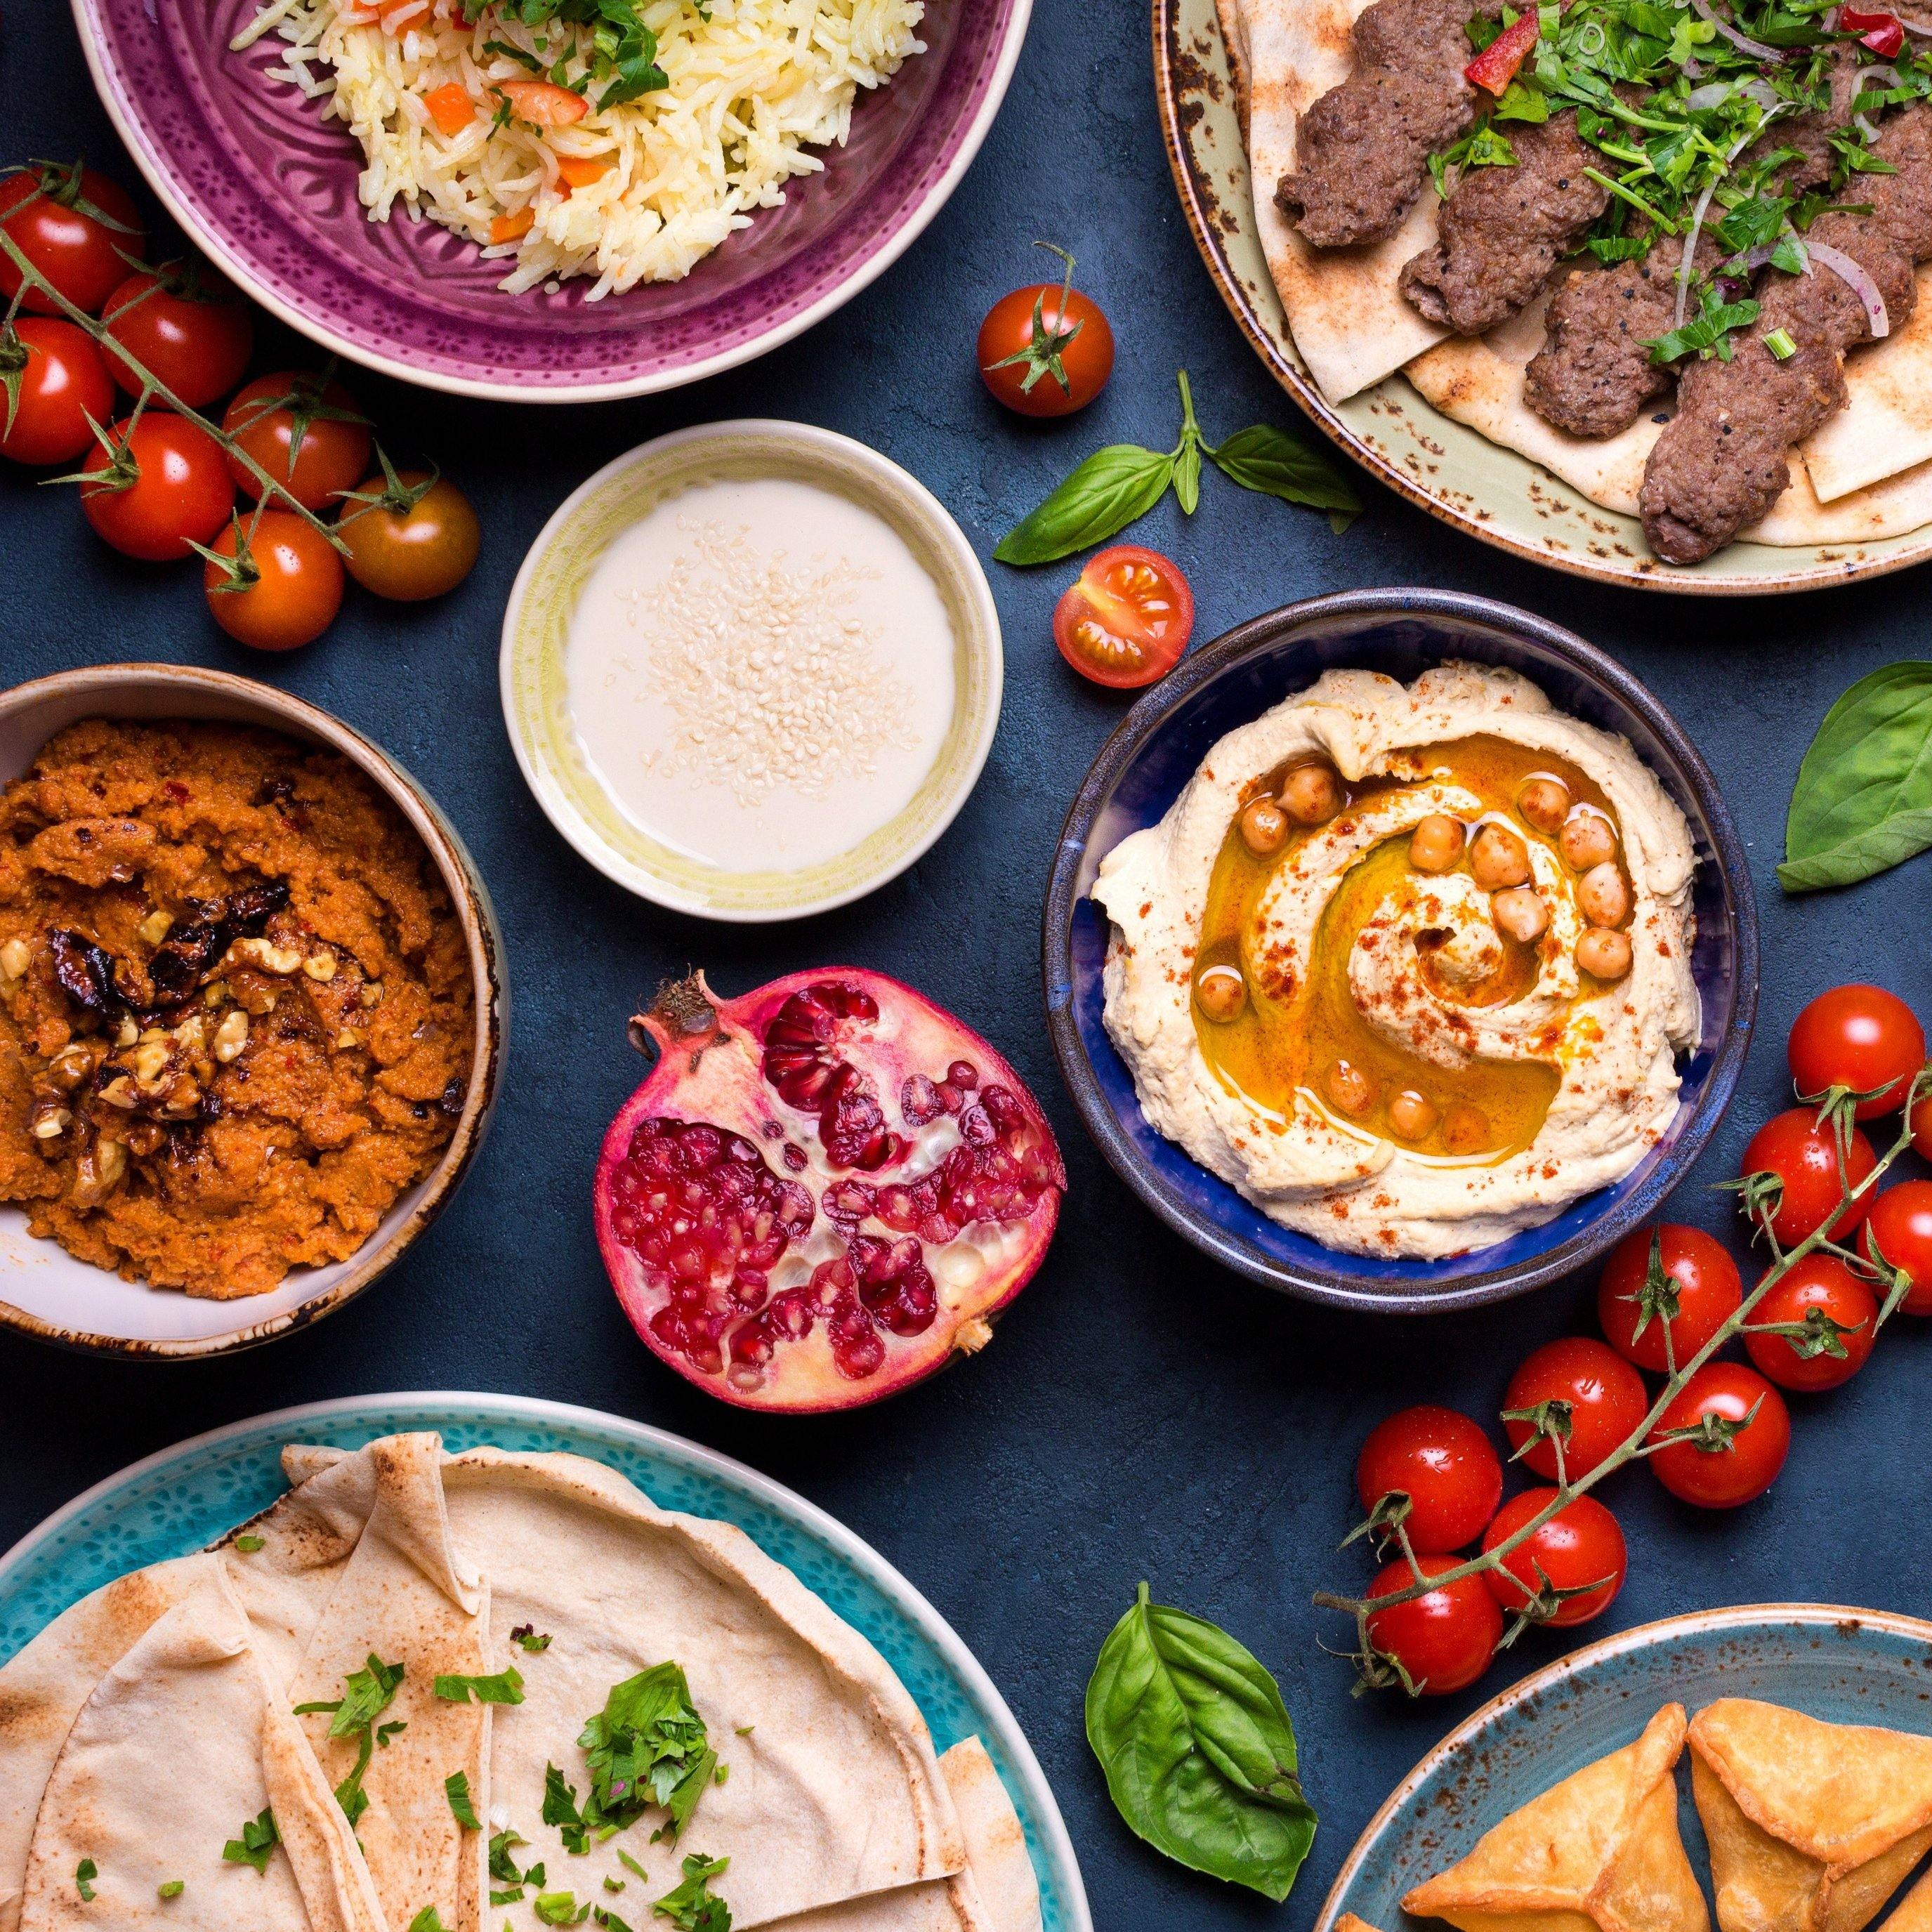 Mezze - Small Plates, Great for Sharing